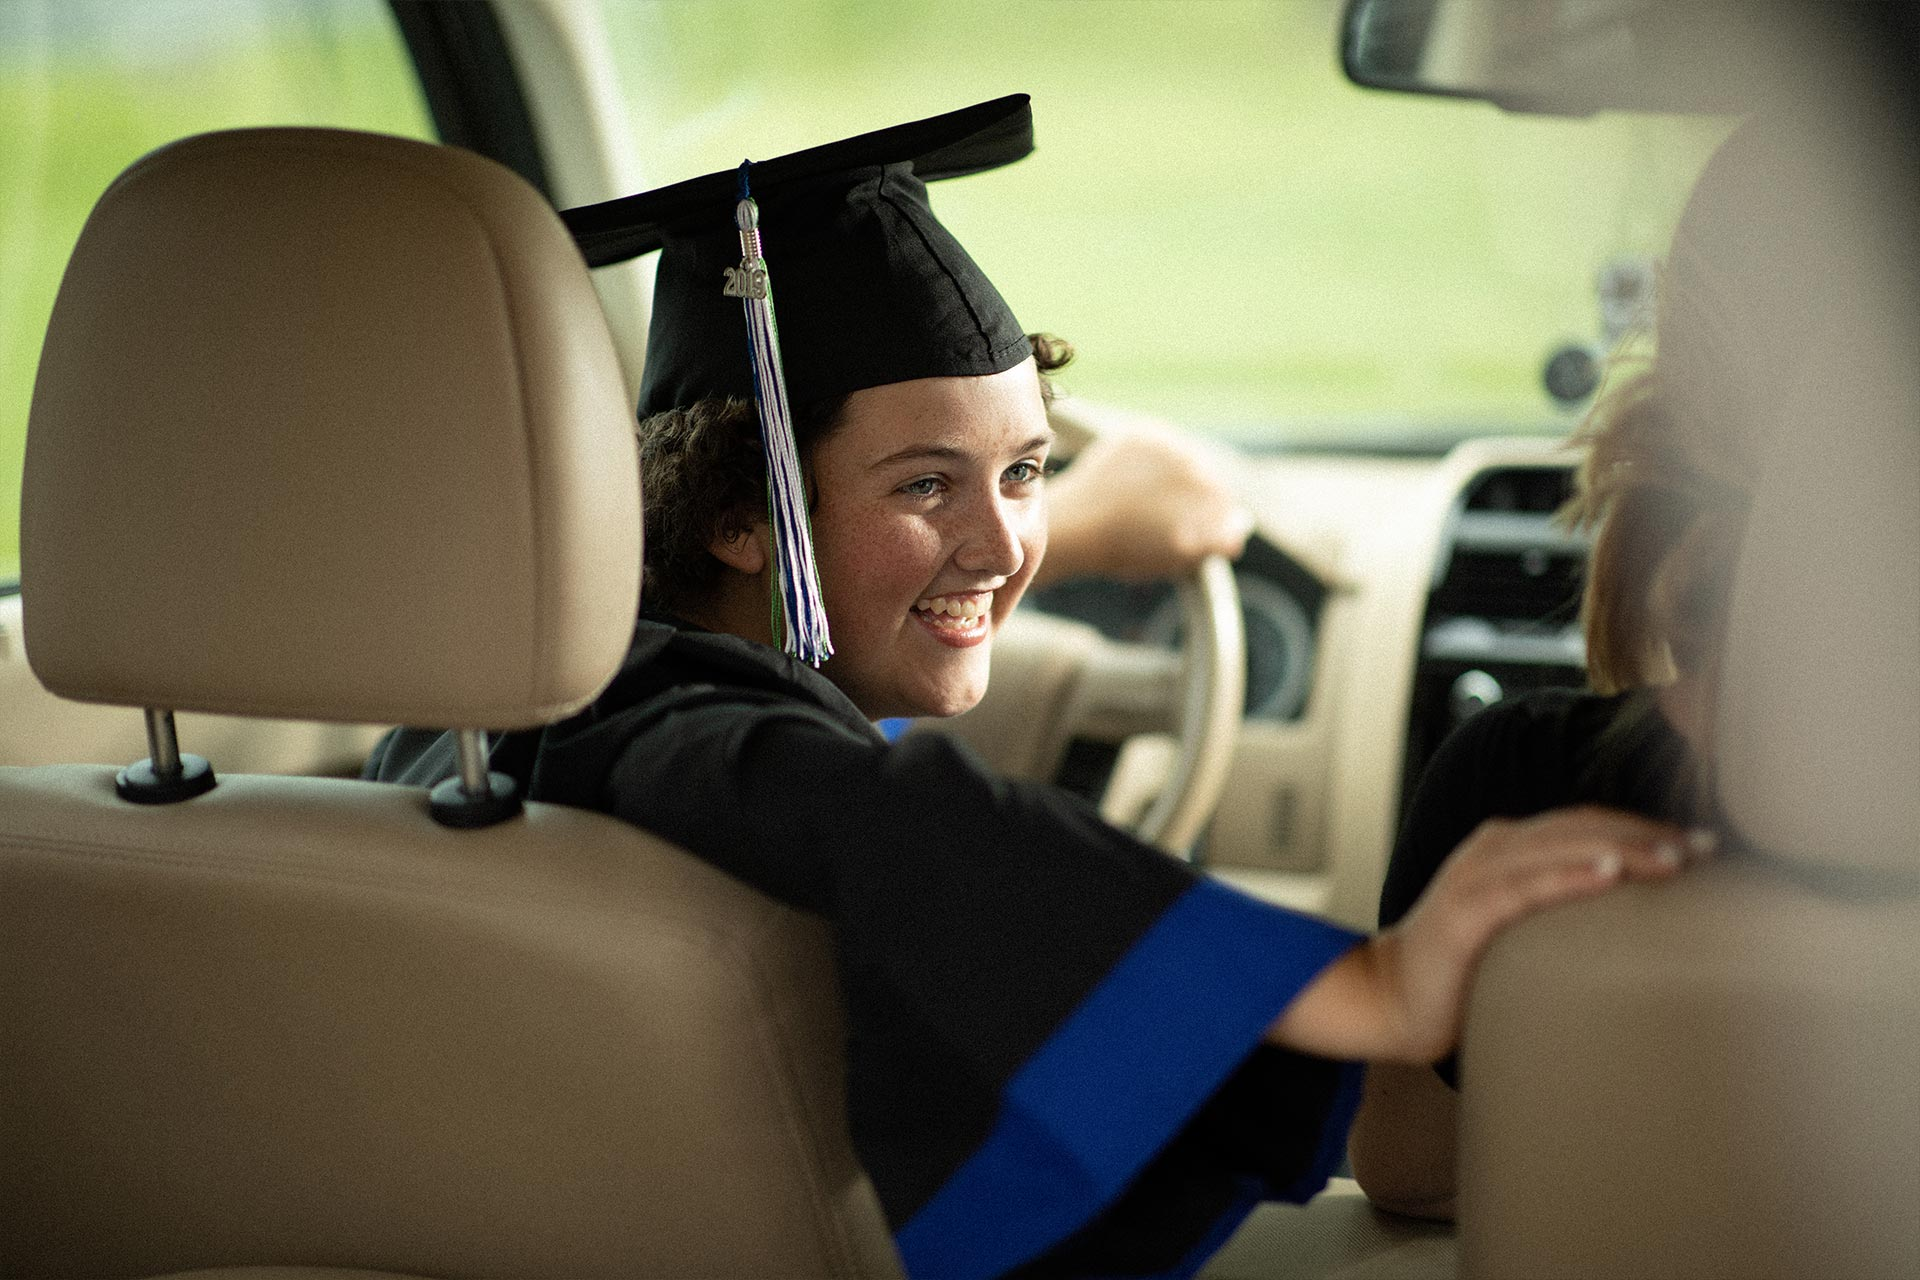 Kylee Tyson sitting in the driver's seat of a car, wearing her graduation cap and gown.